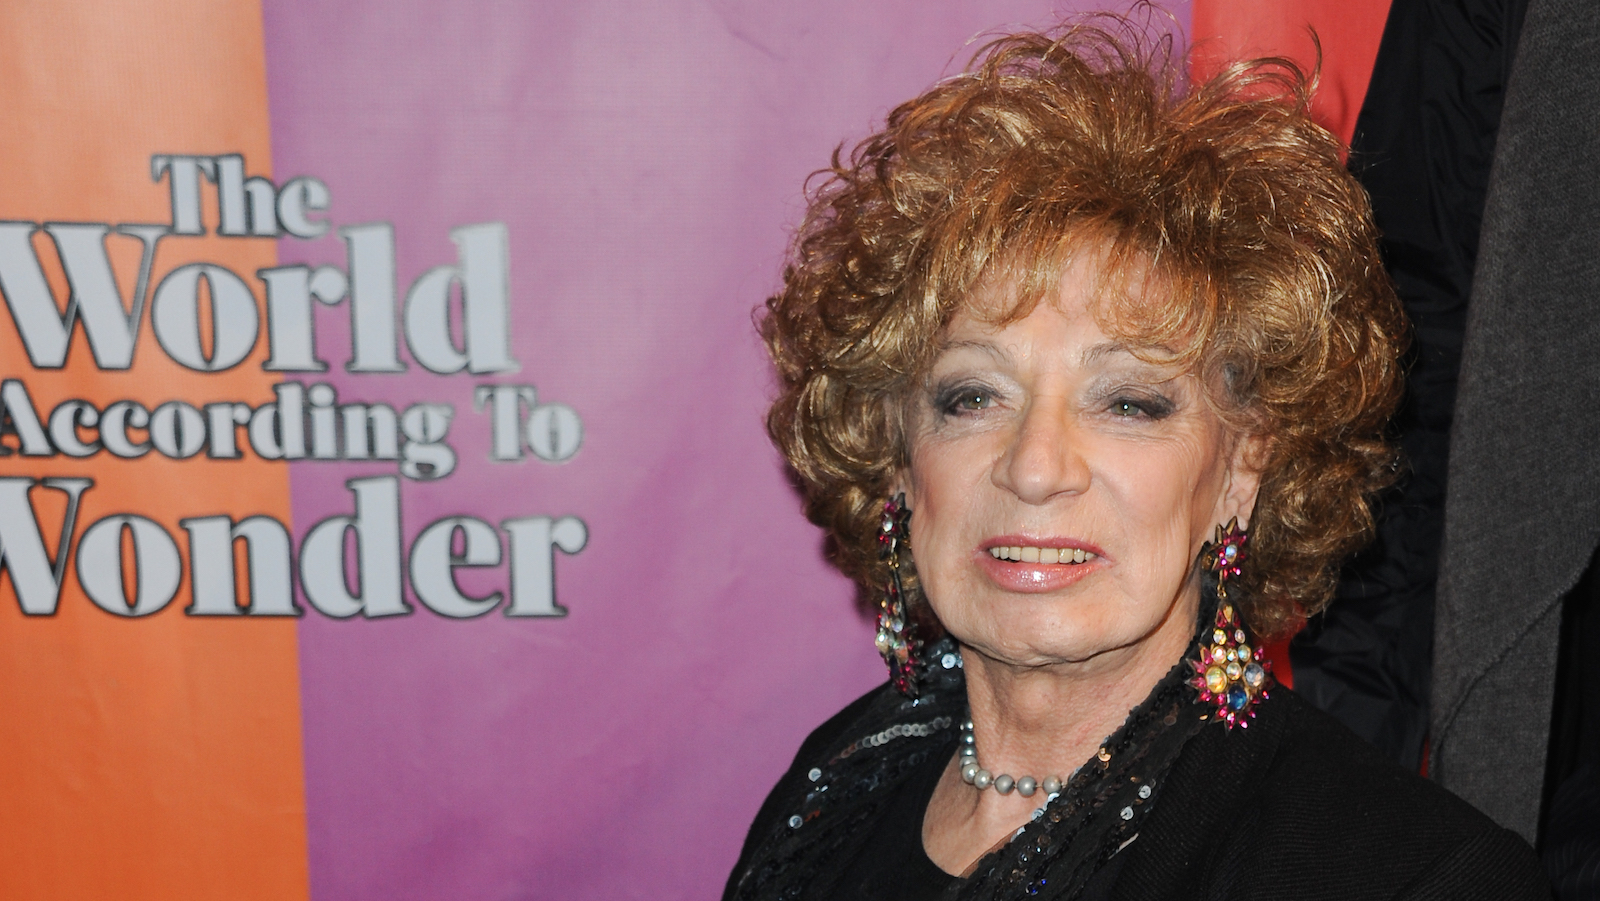 """Holly Woodlawn attends the """"World of Wonder"""" book release party at Universal Studios on Thursday, Dec. 13, 2012, in Los Angeles."""